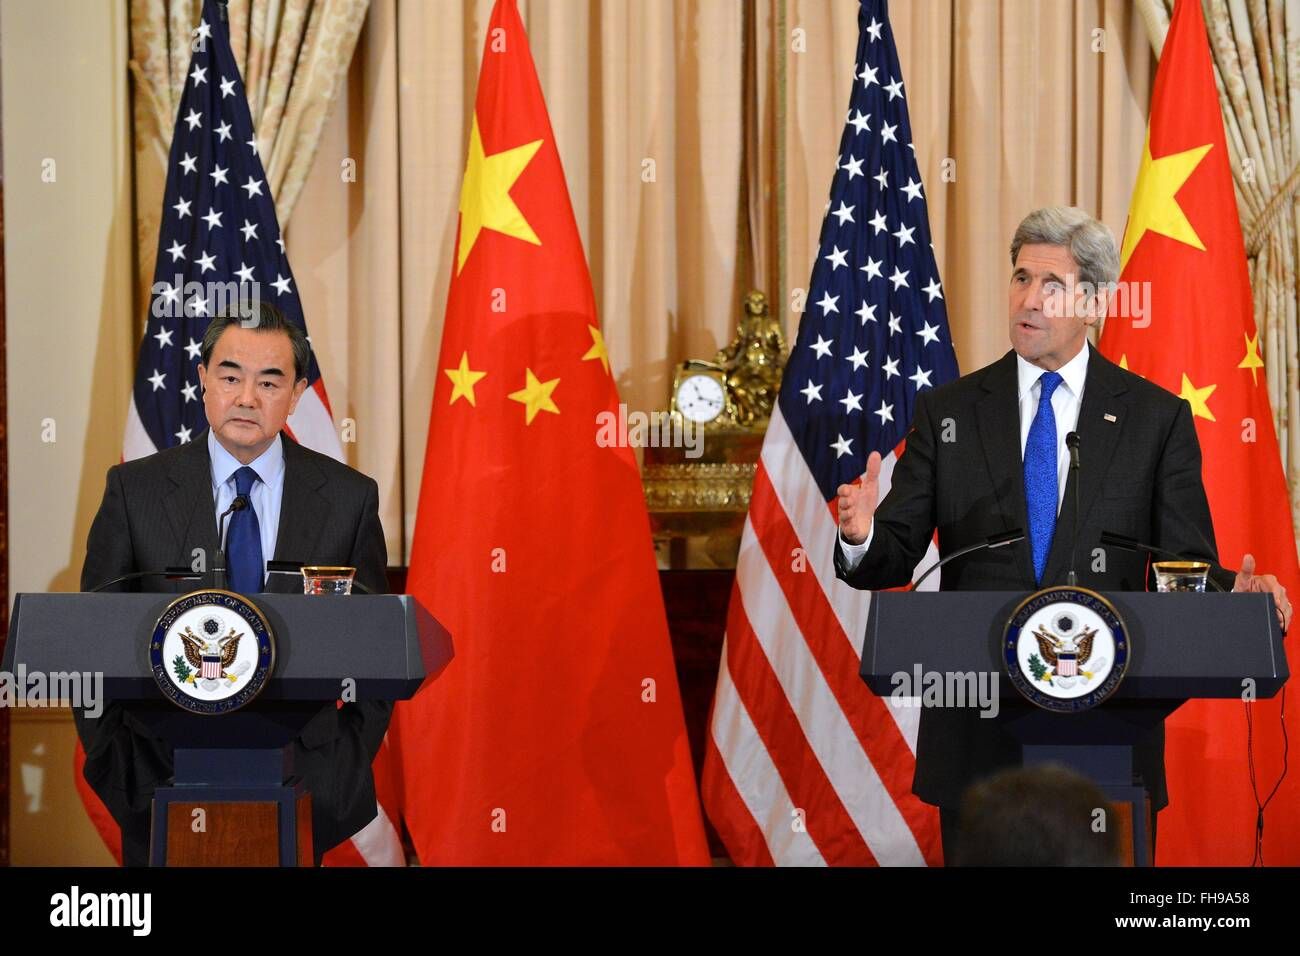 U.S. Secretary of State John Kerry and Chinese Foreign Minister Wang Yi during a joint news conference at the Department - Stock Image